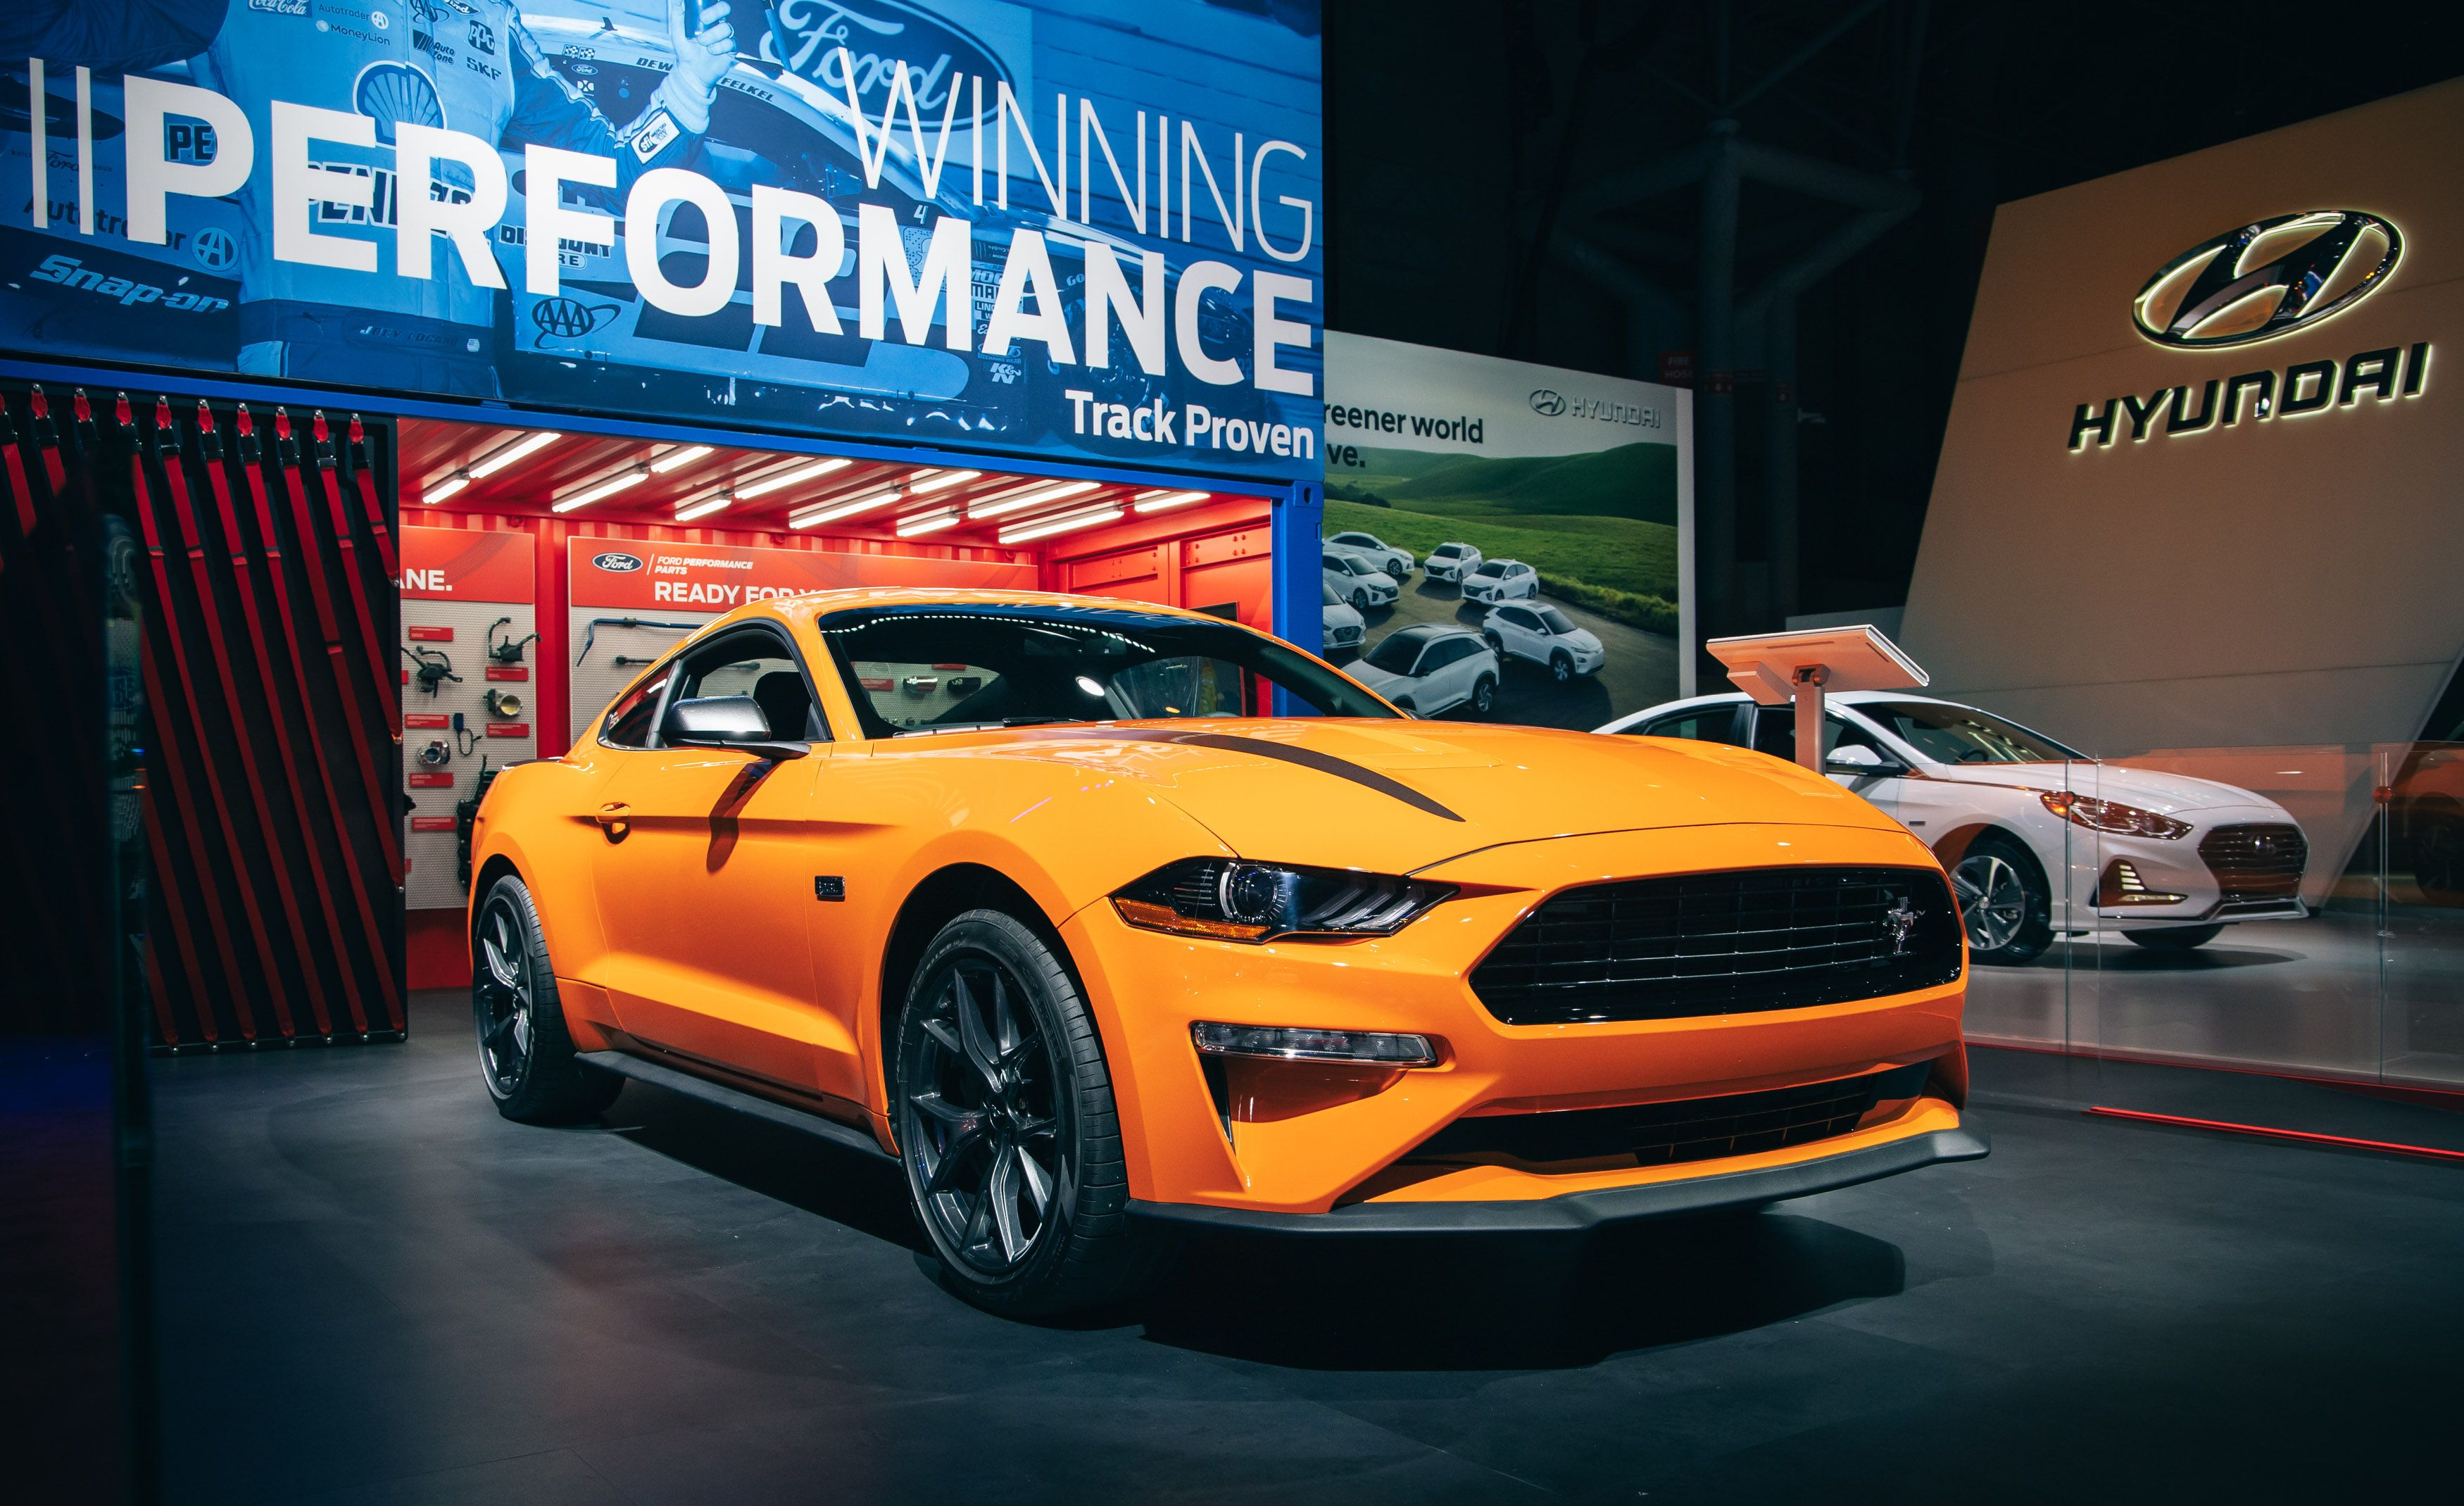 The 2020 ford mustang ecoboost base model gets a better performance package